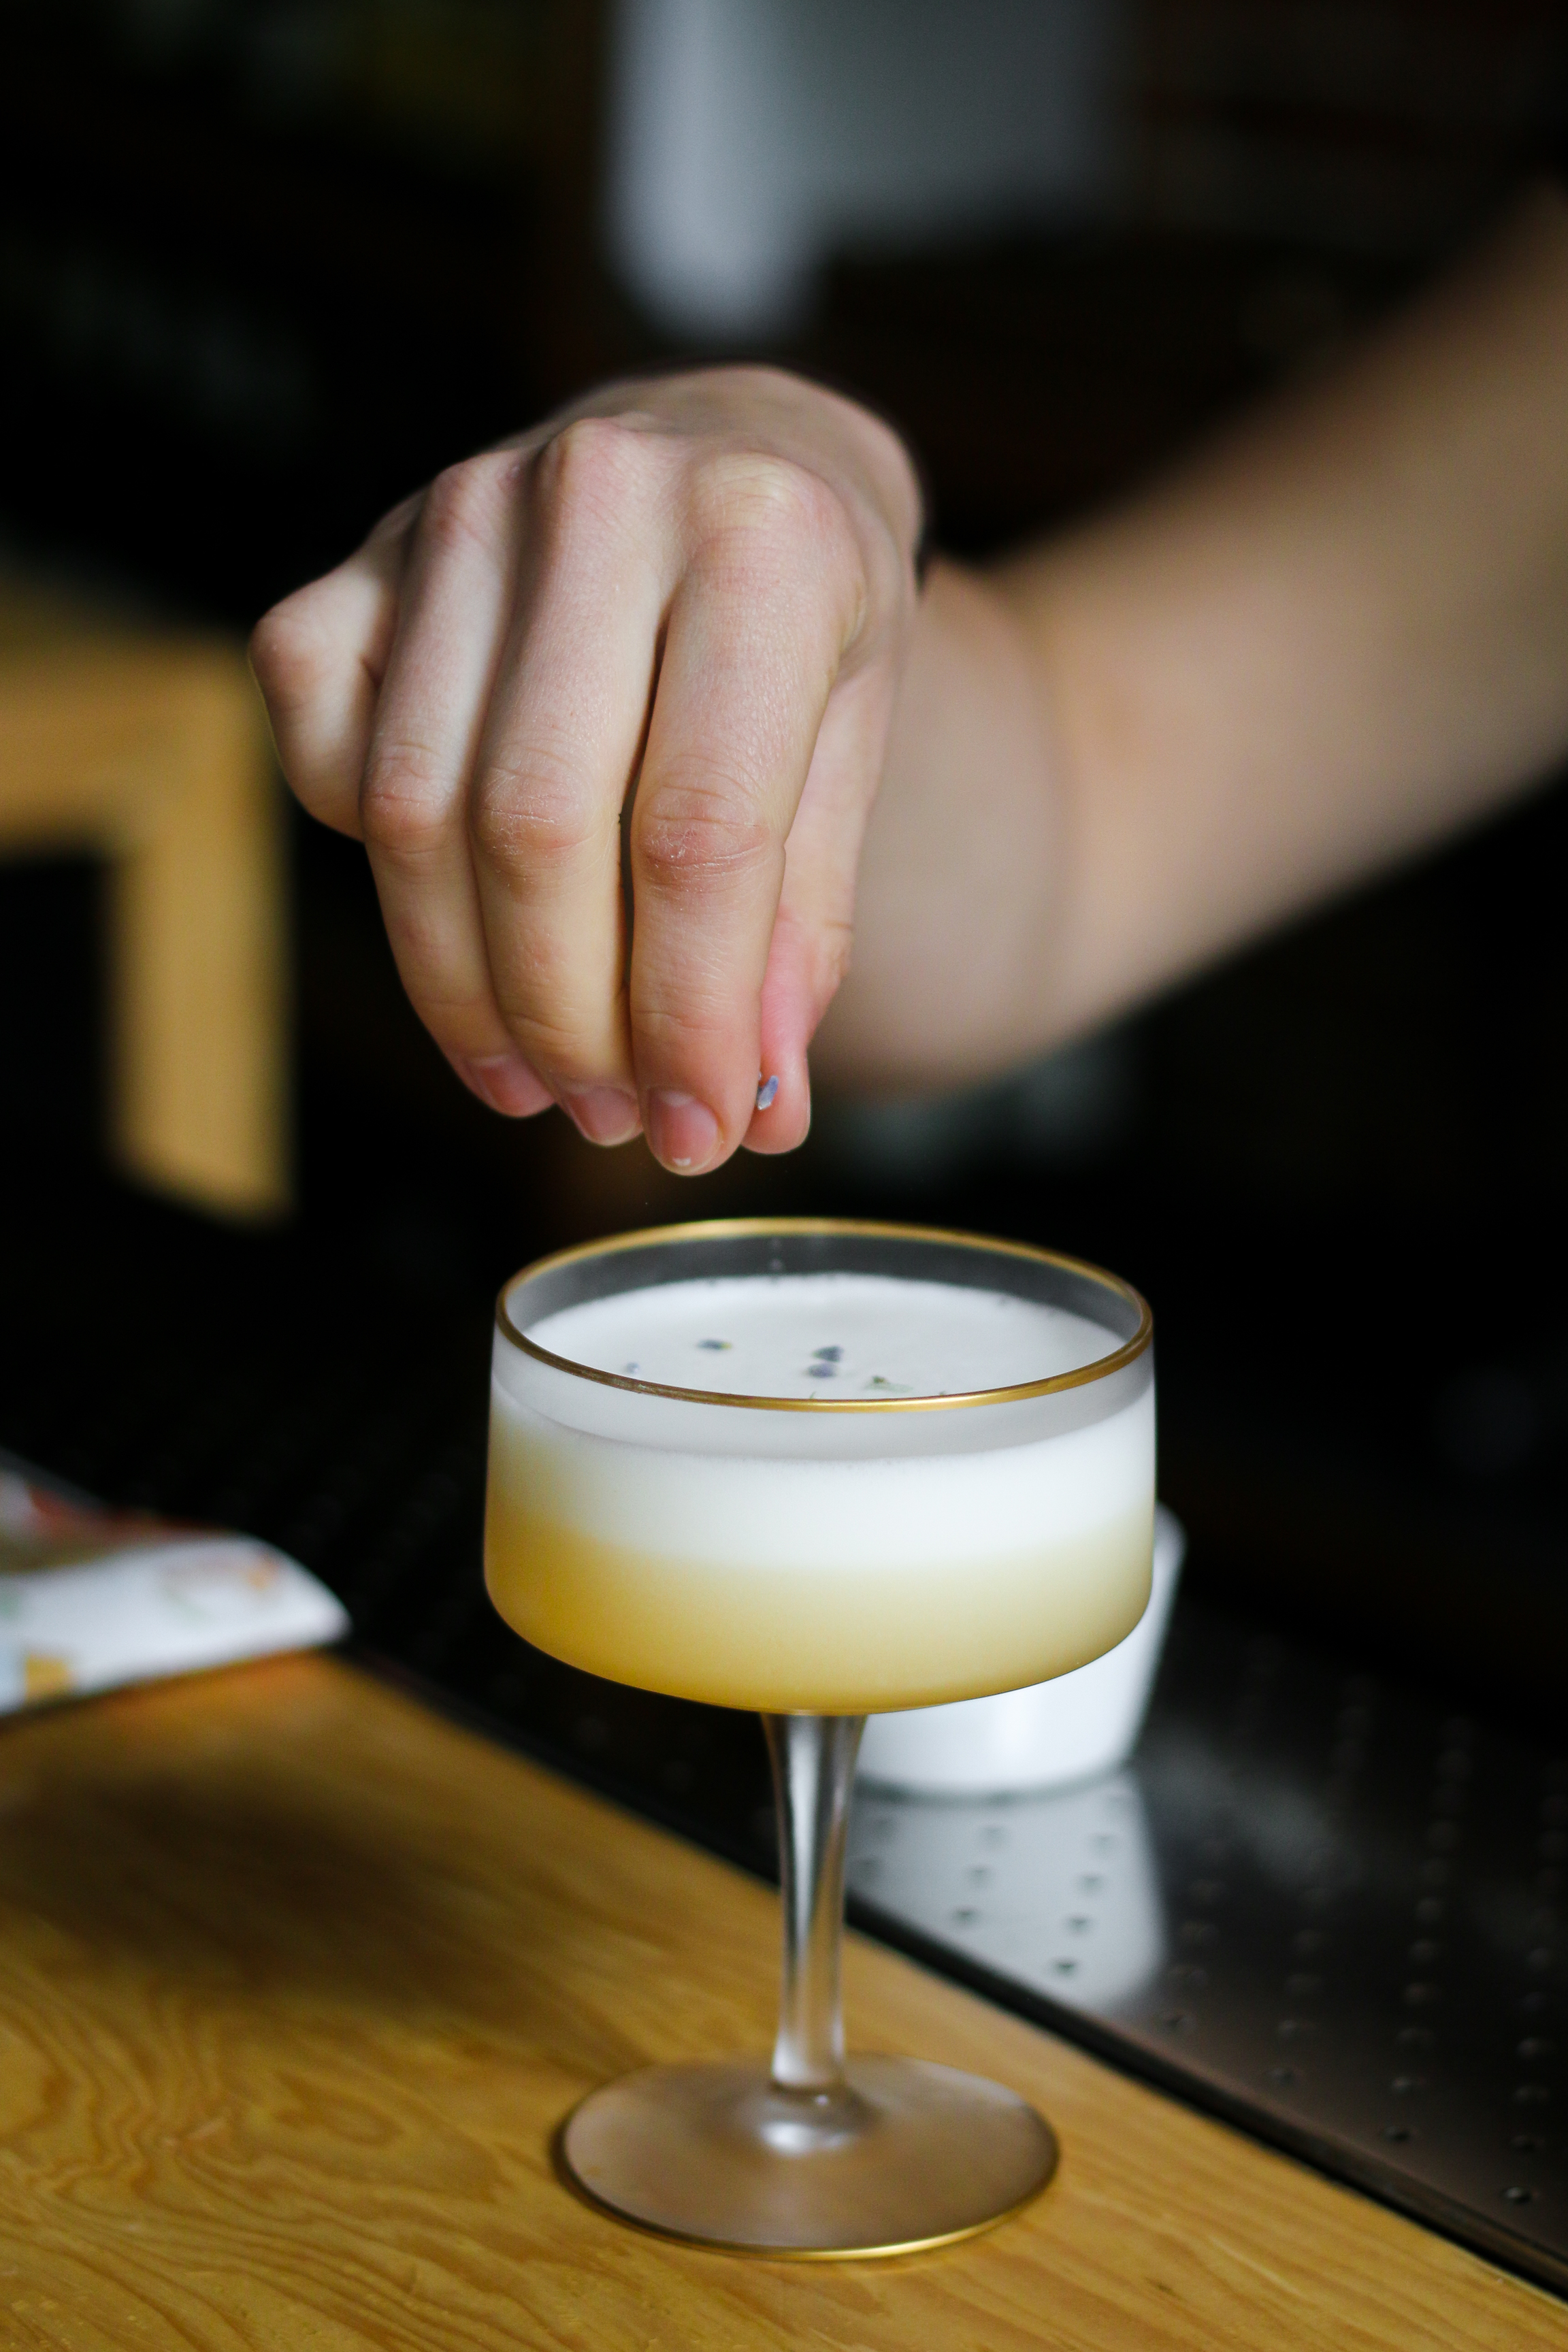 The bartender tops of an Earl Grey Martini at L'Abattoir in Vancouver British Columbia as part of a Dirt Road Travels city guide.